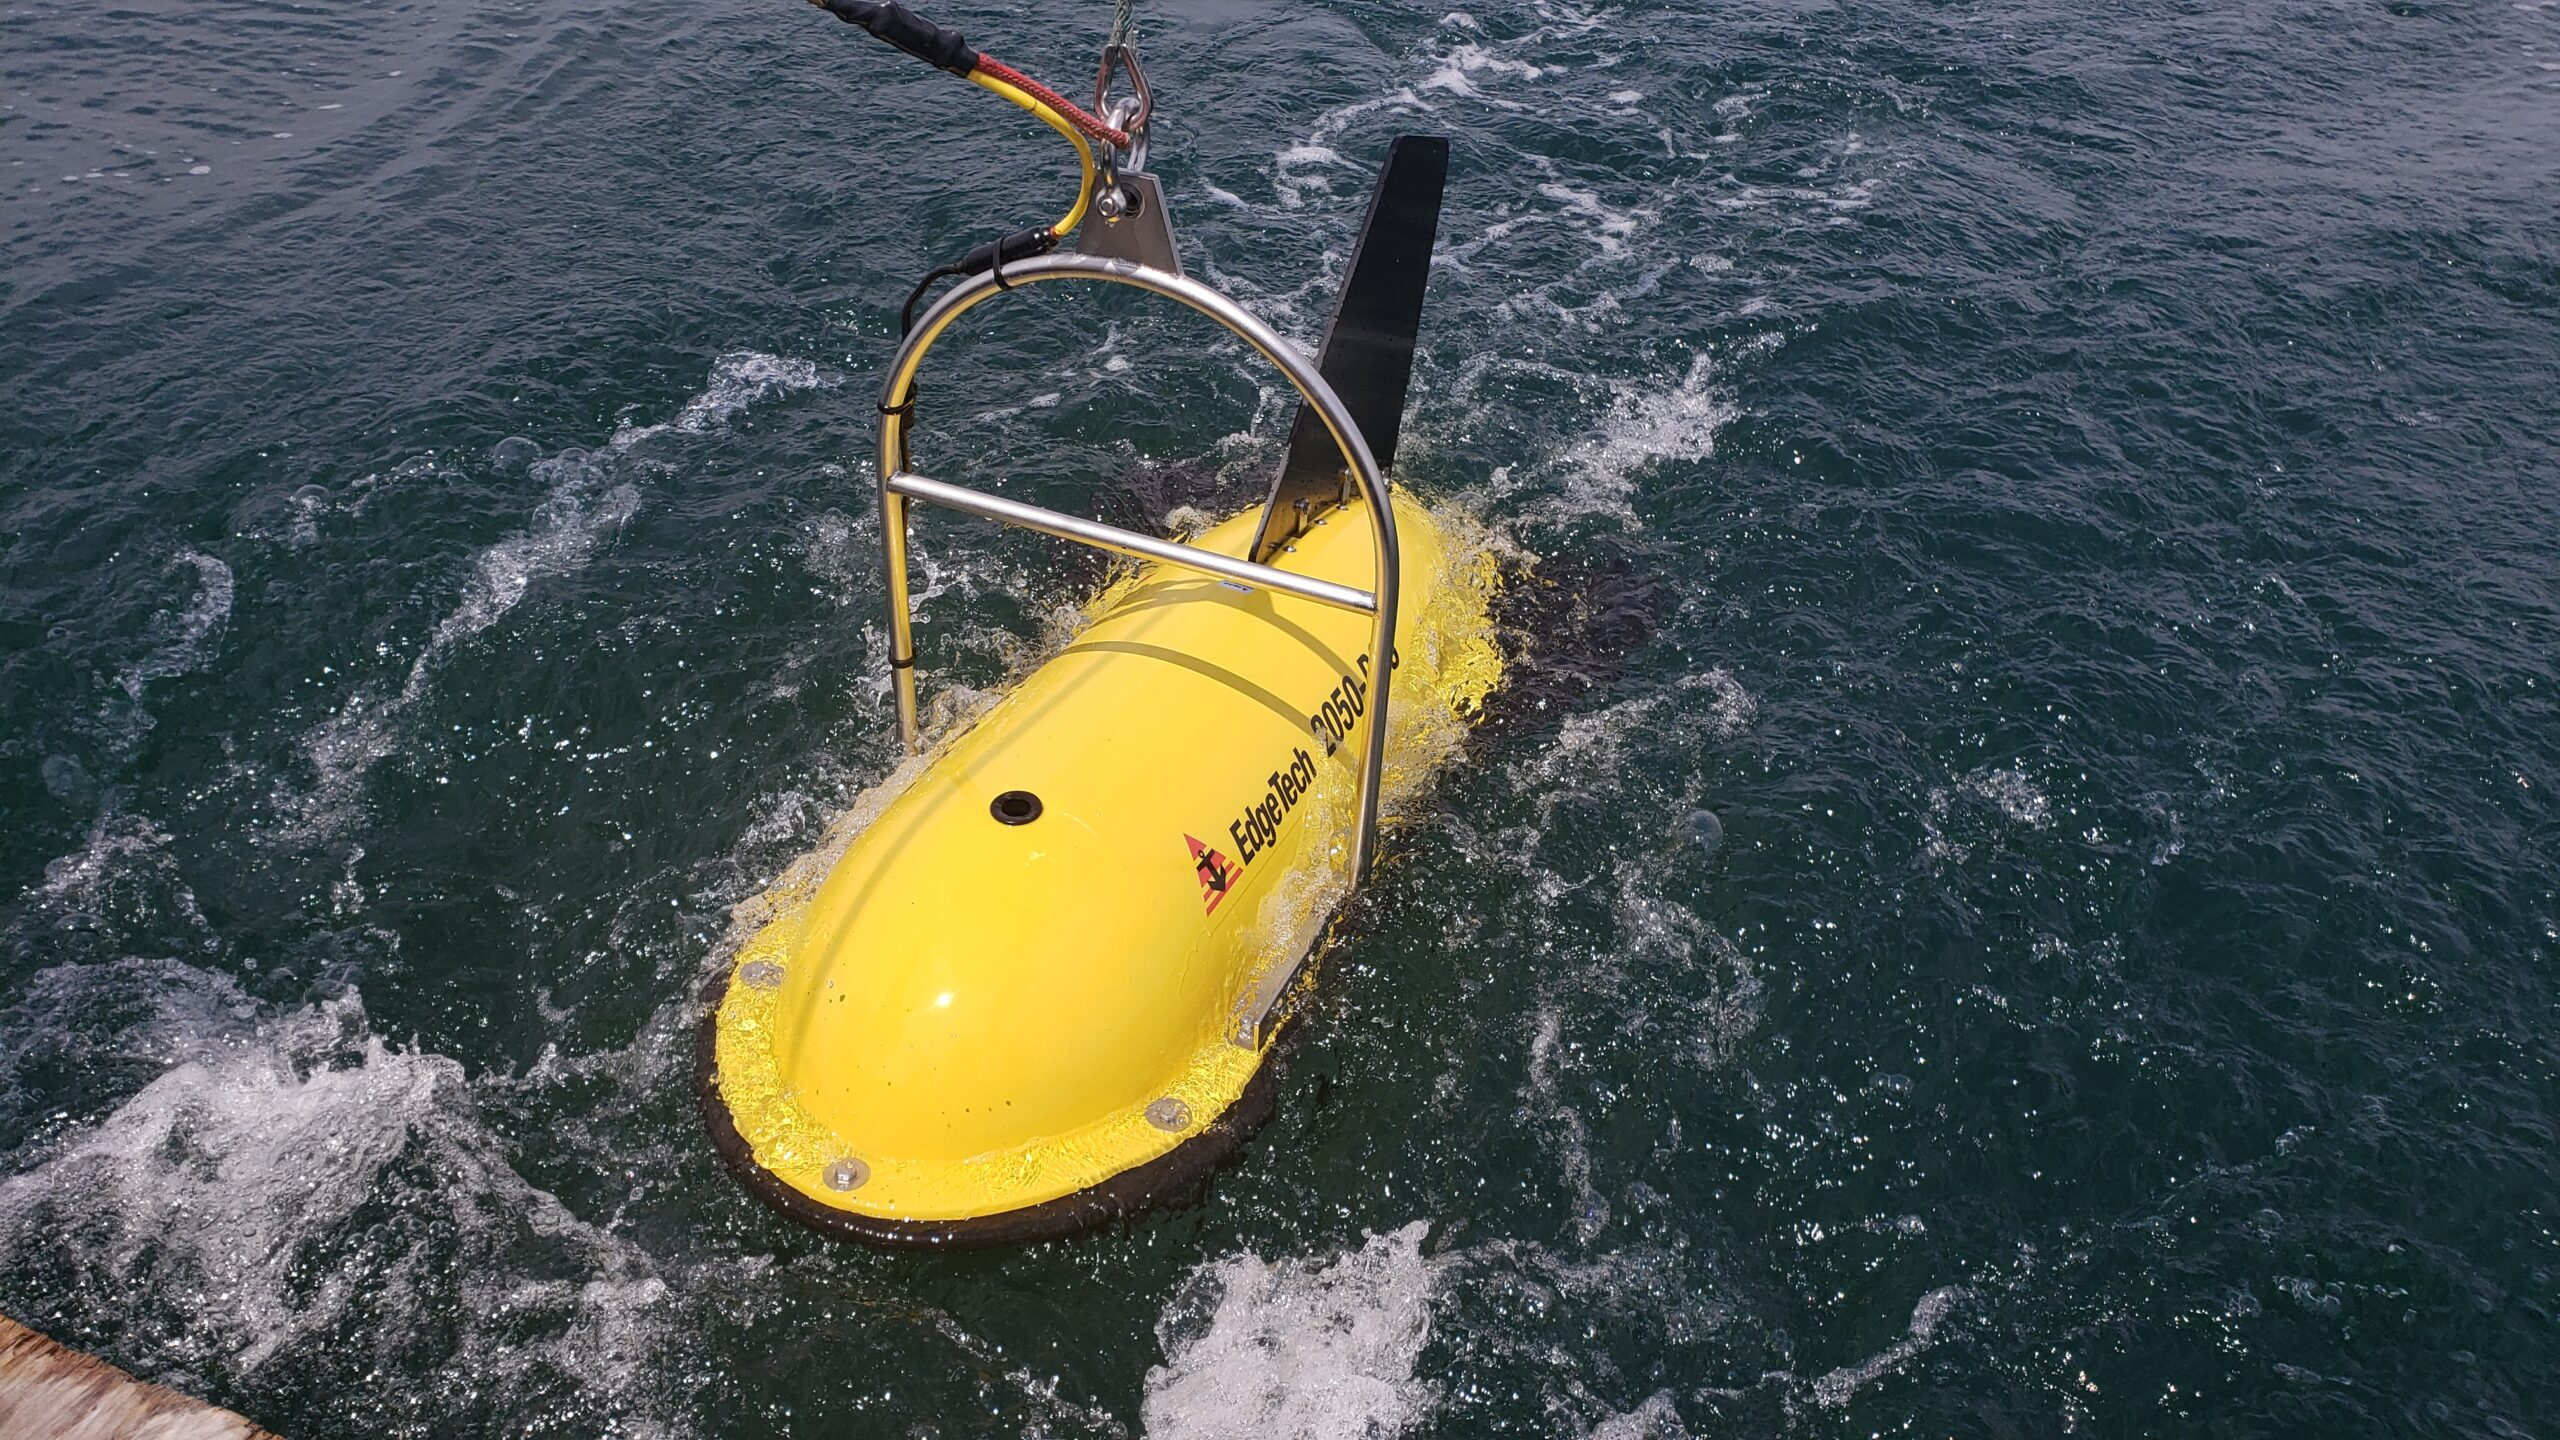 MEMBER NEWS: Ashtead Technology invests over £1m in new EdgeTech sonar technology